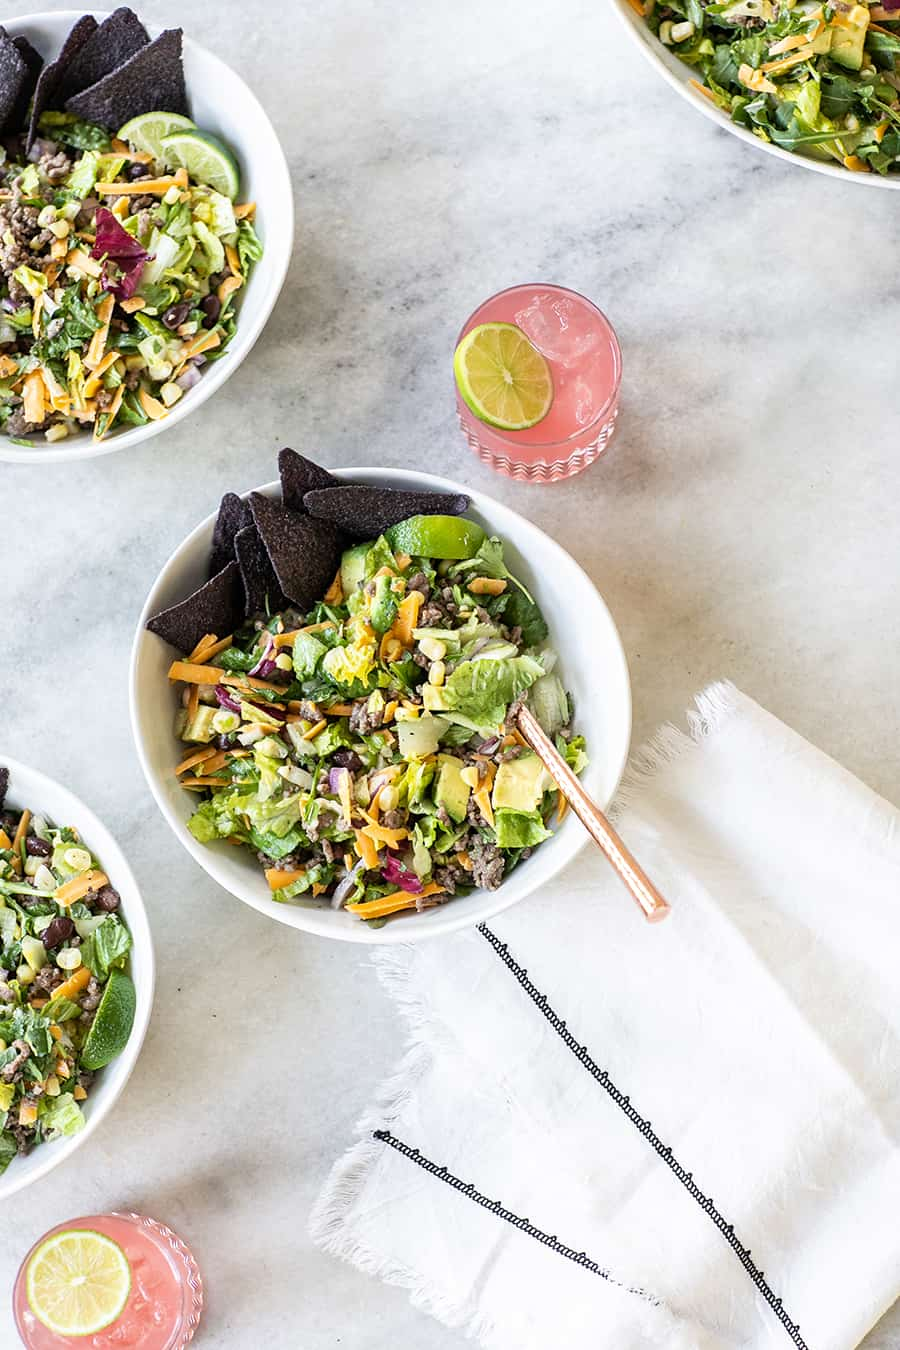 Taco salad bowls with margaritas